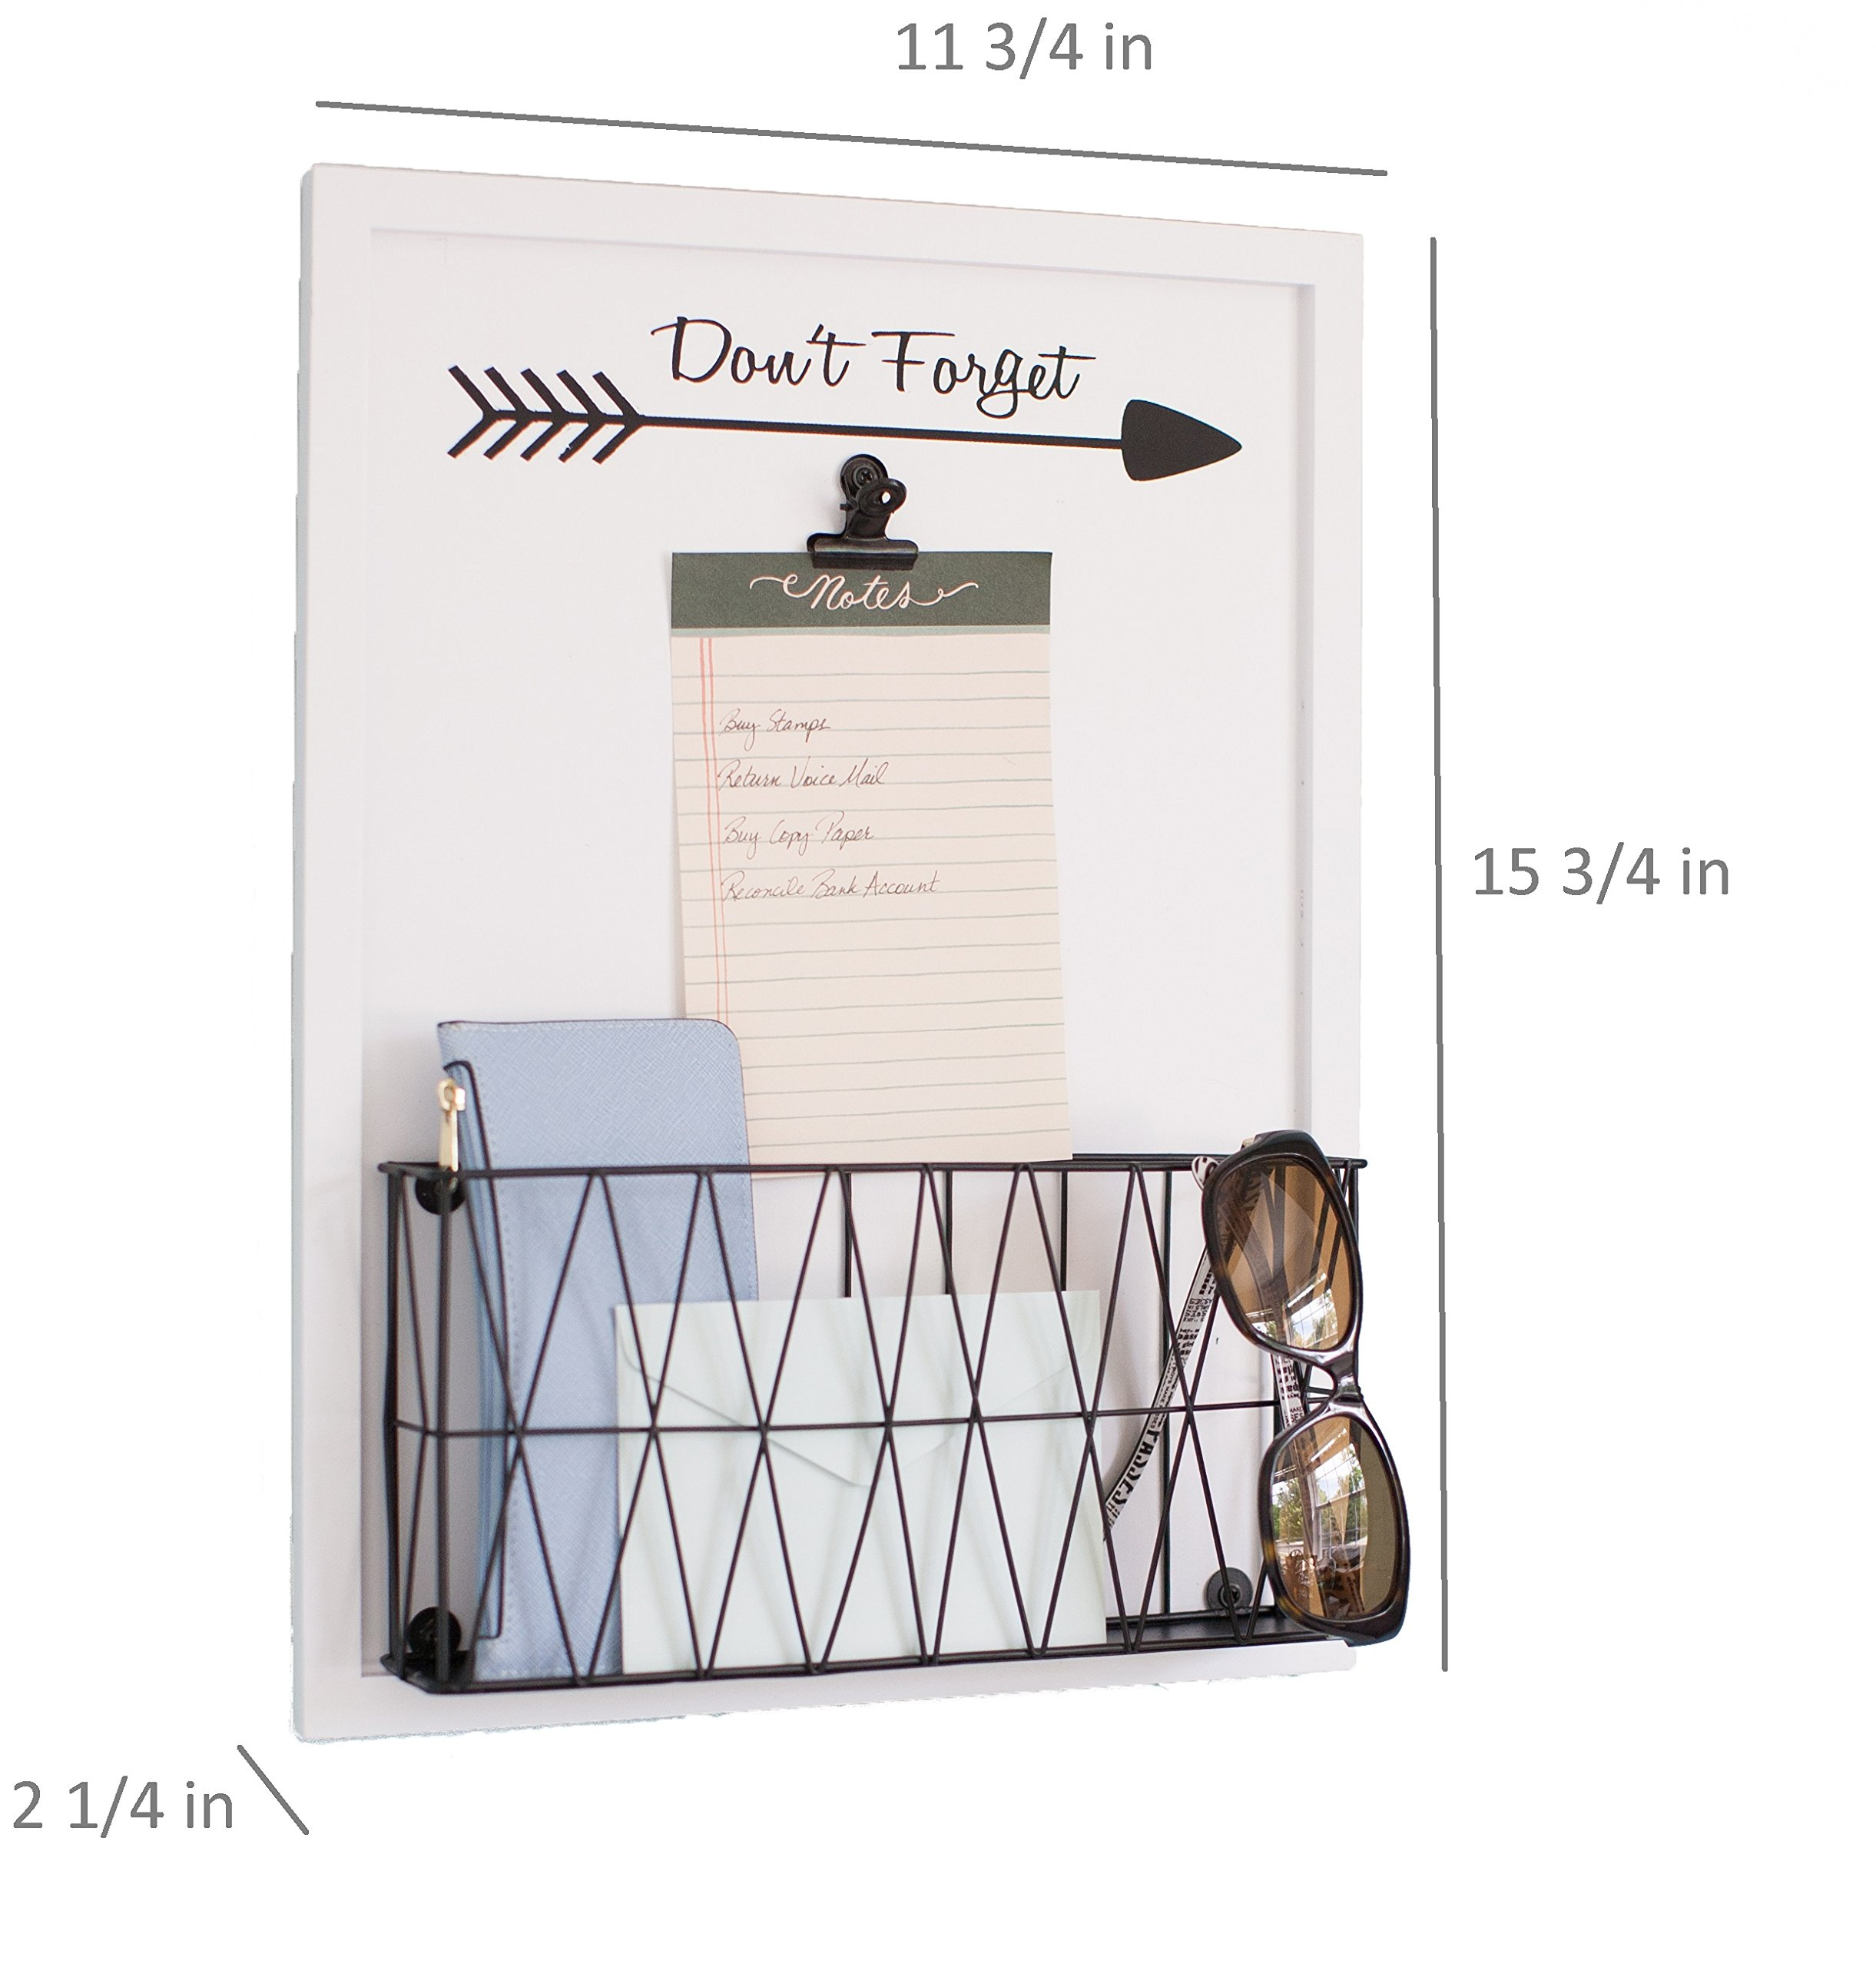 Blu Monaco Rustic Farmhouse Wall Mounted Mail Holder - Note Clip for Storage - White Wooden with Iron Black Metal Basket - for Office, Kitchen, Entryway